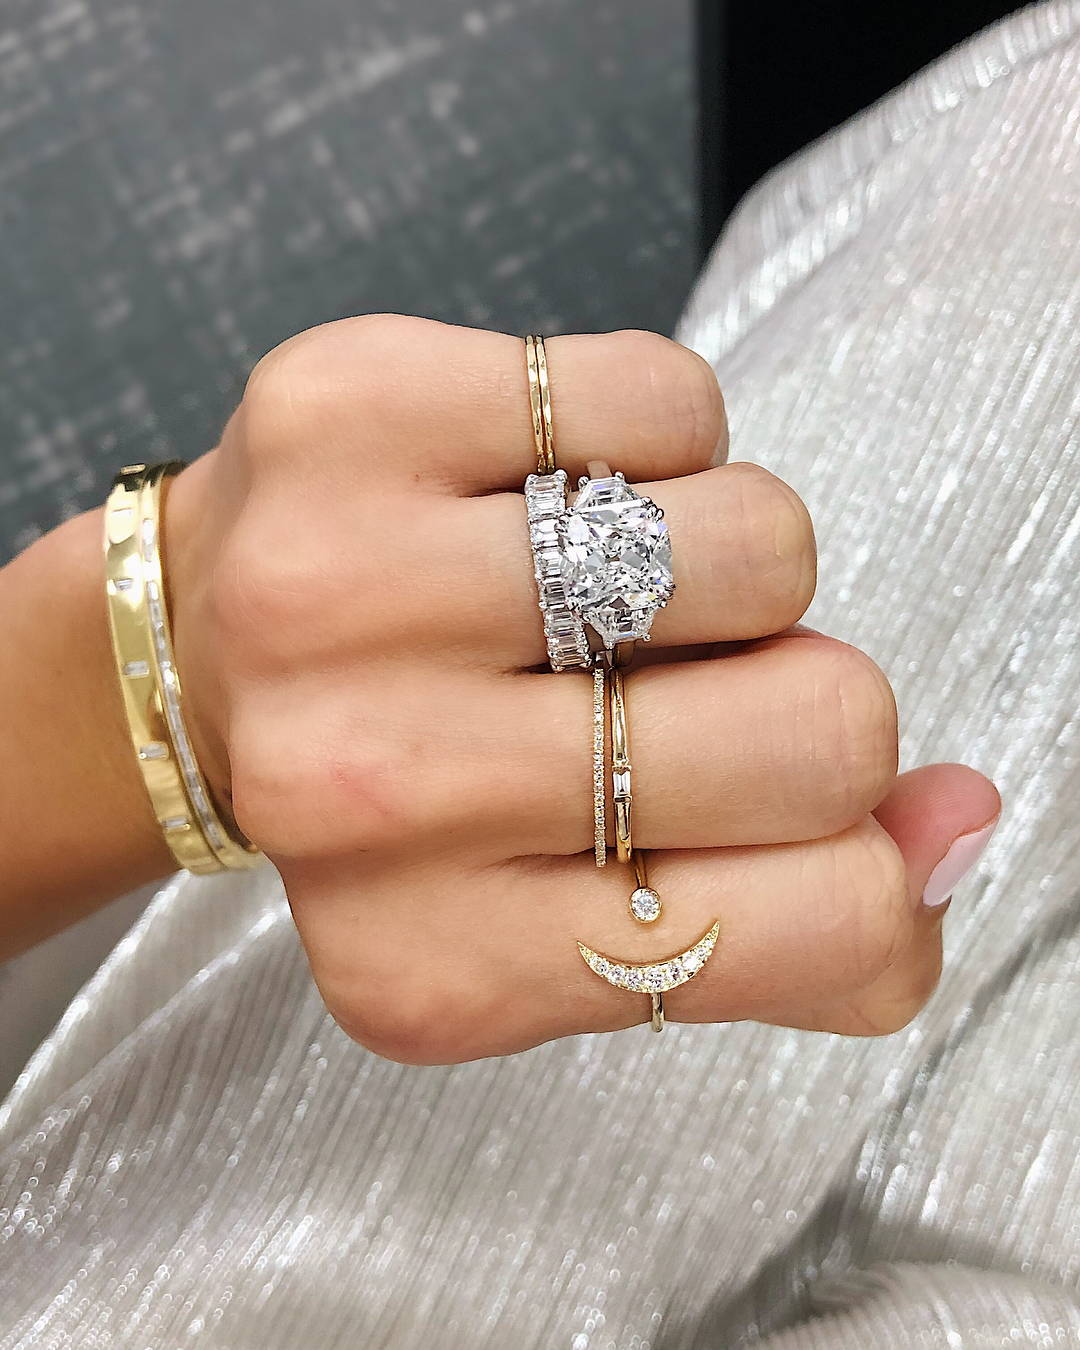 Baguette silver ring silver women/'s ring diamond model ring single stone ring three stone ring marriage ring marriage proposal ring